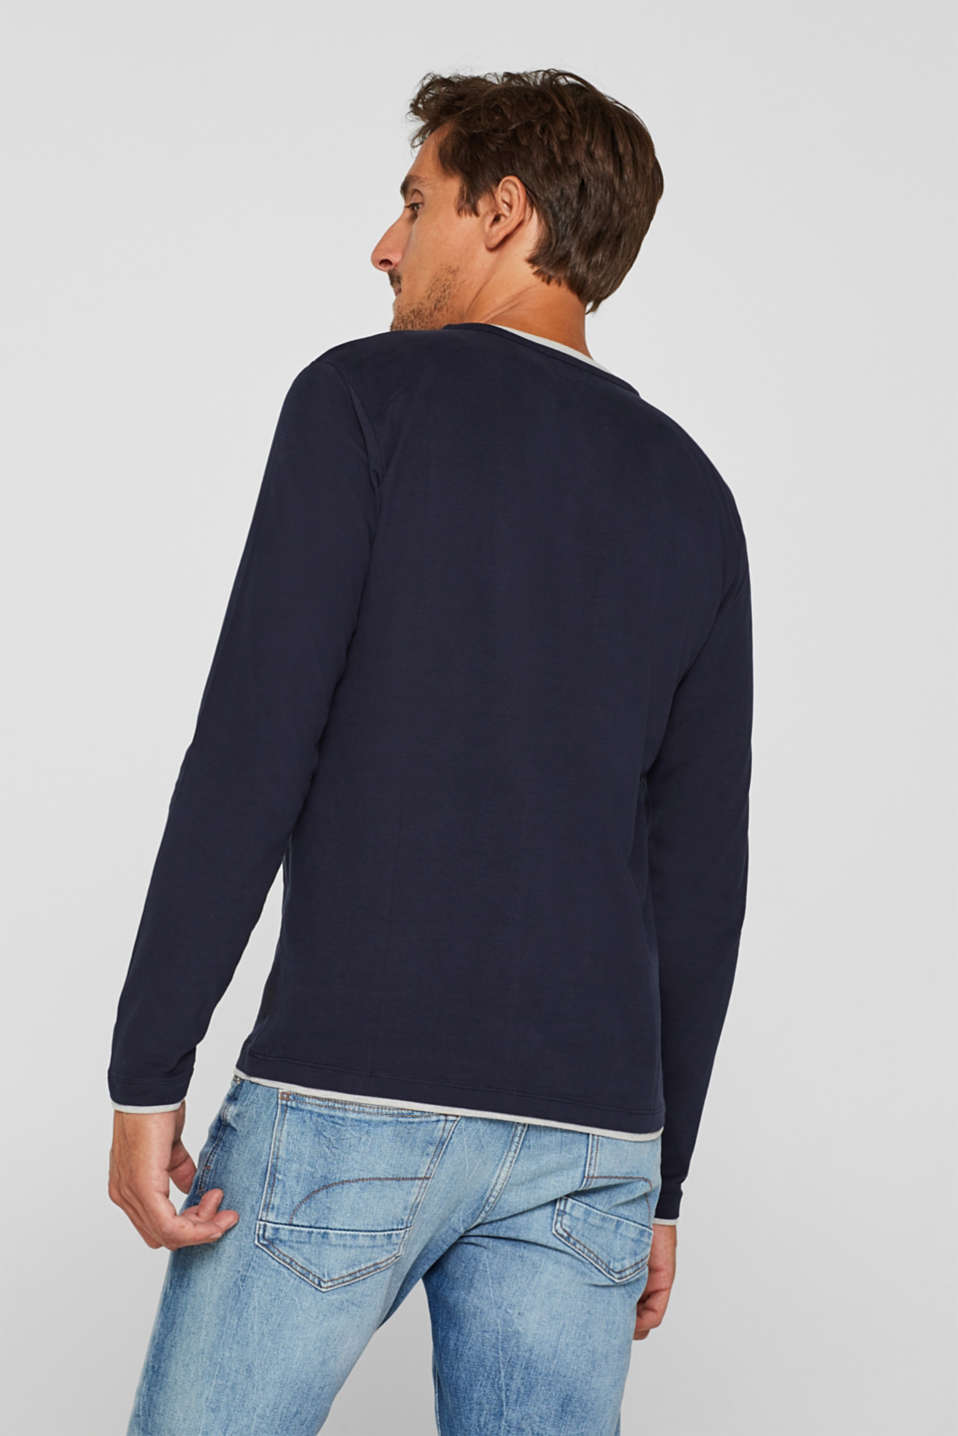 Jersey long sleeve top with a Henley neckline, NAVY, detail image number 3